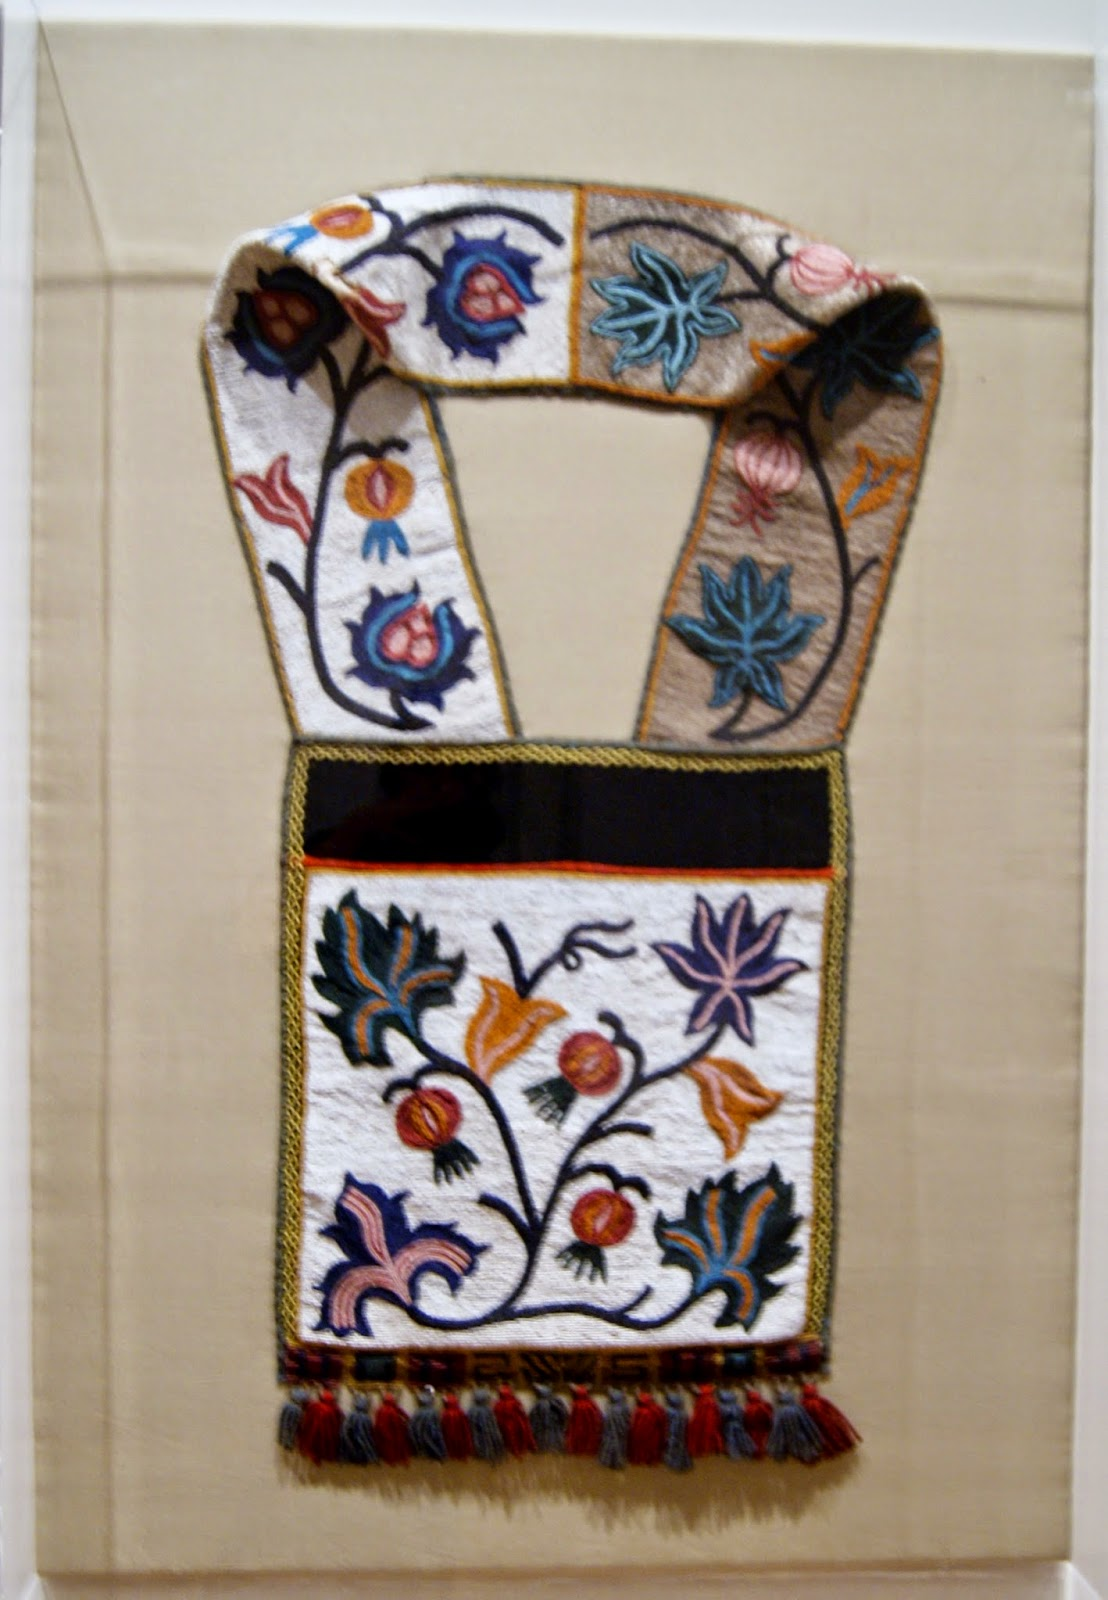 Before and after the Horizon: Anishinaabe Artists of The Great Lakes Exhibition at The Art Gallery of Ontario in Toronto, Culture, Native, Aboriginal, History, Ontario, Canada, The Purple Scarf, Melanie.Ps, Bandolier Bag, Unknown